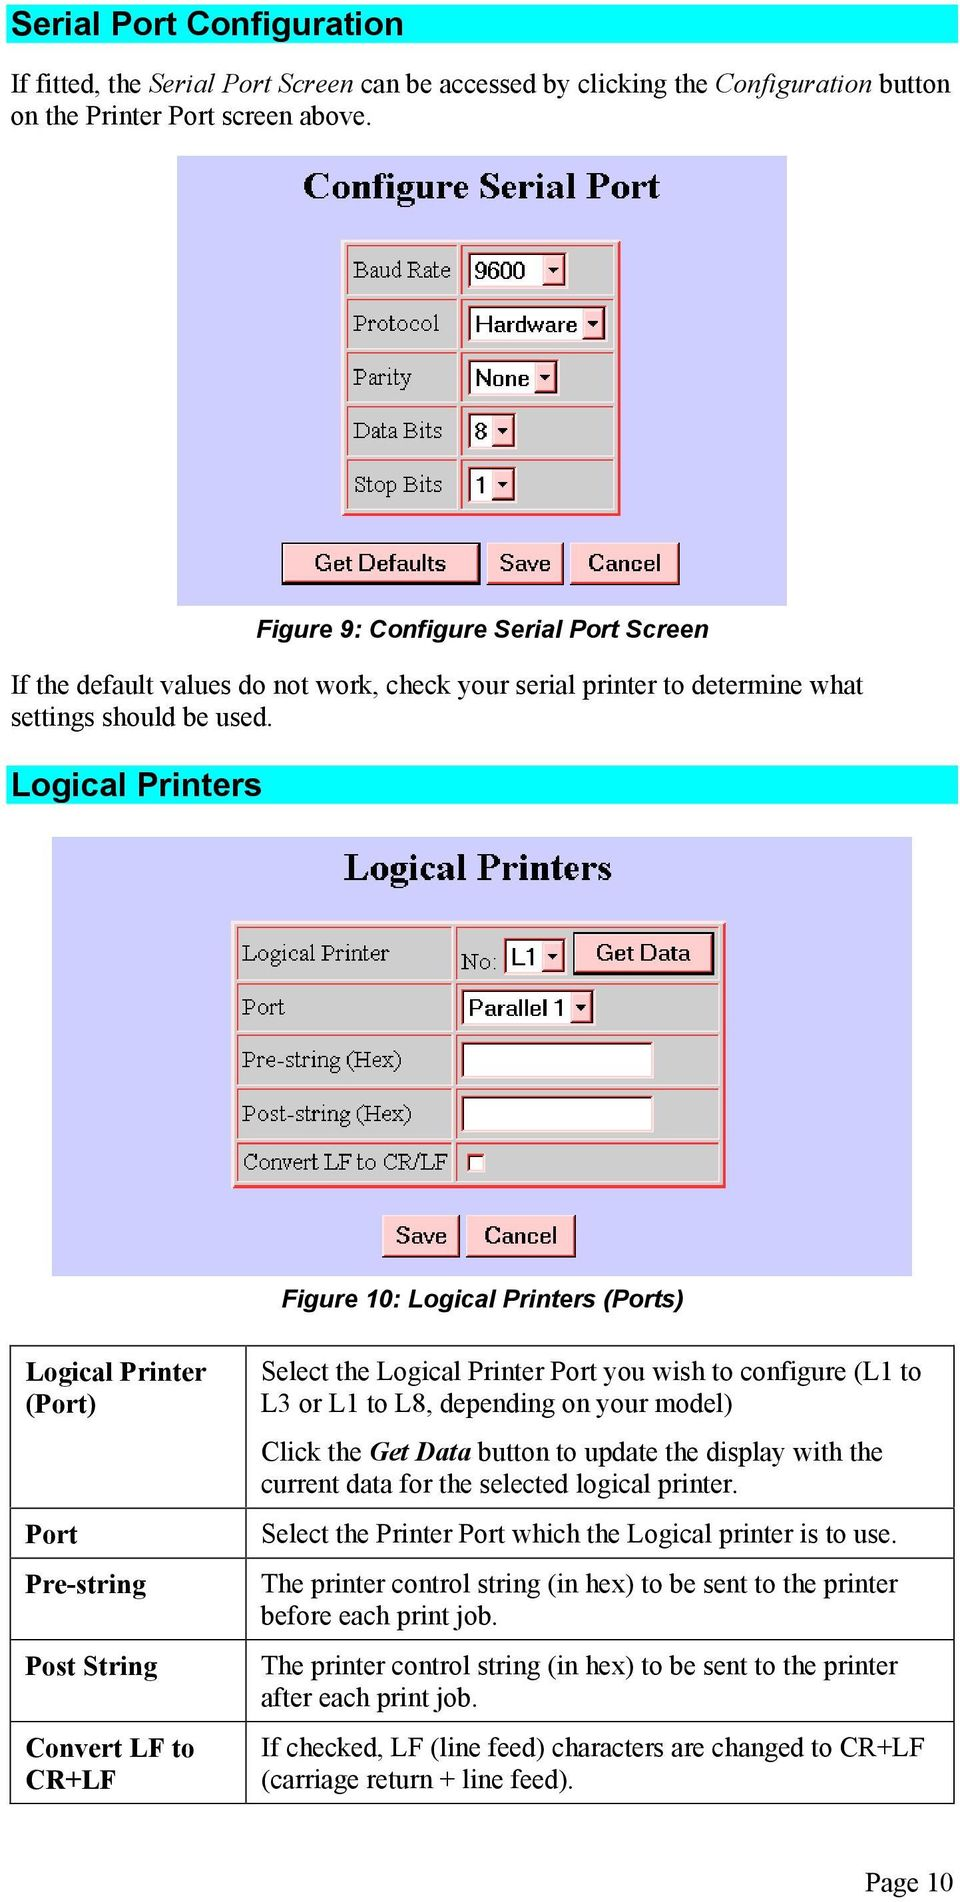 Logical Printers Figure 10: Logical Printers (Ports) Logical Printer (Port) Port Pre-string Post String Convert LF to CR+LF Select the Logical Printer Port you wish to configure (L1 to L3 or L1 to